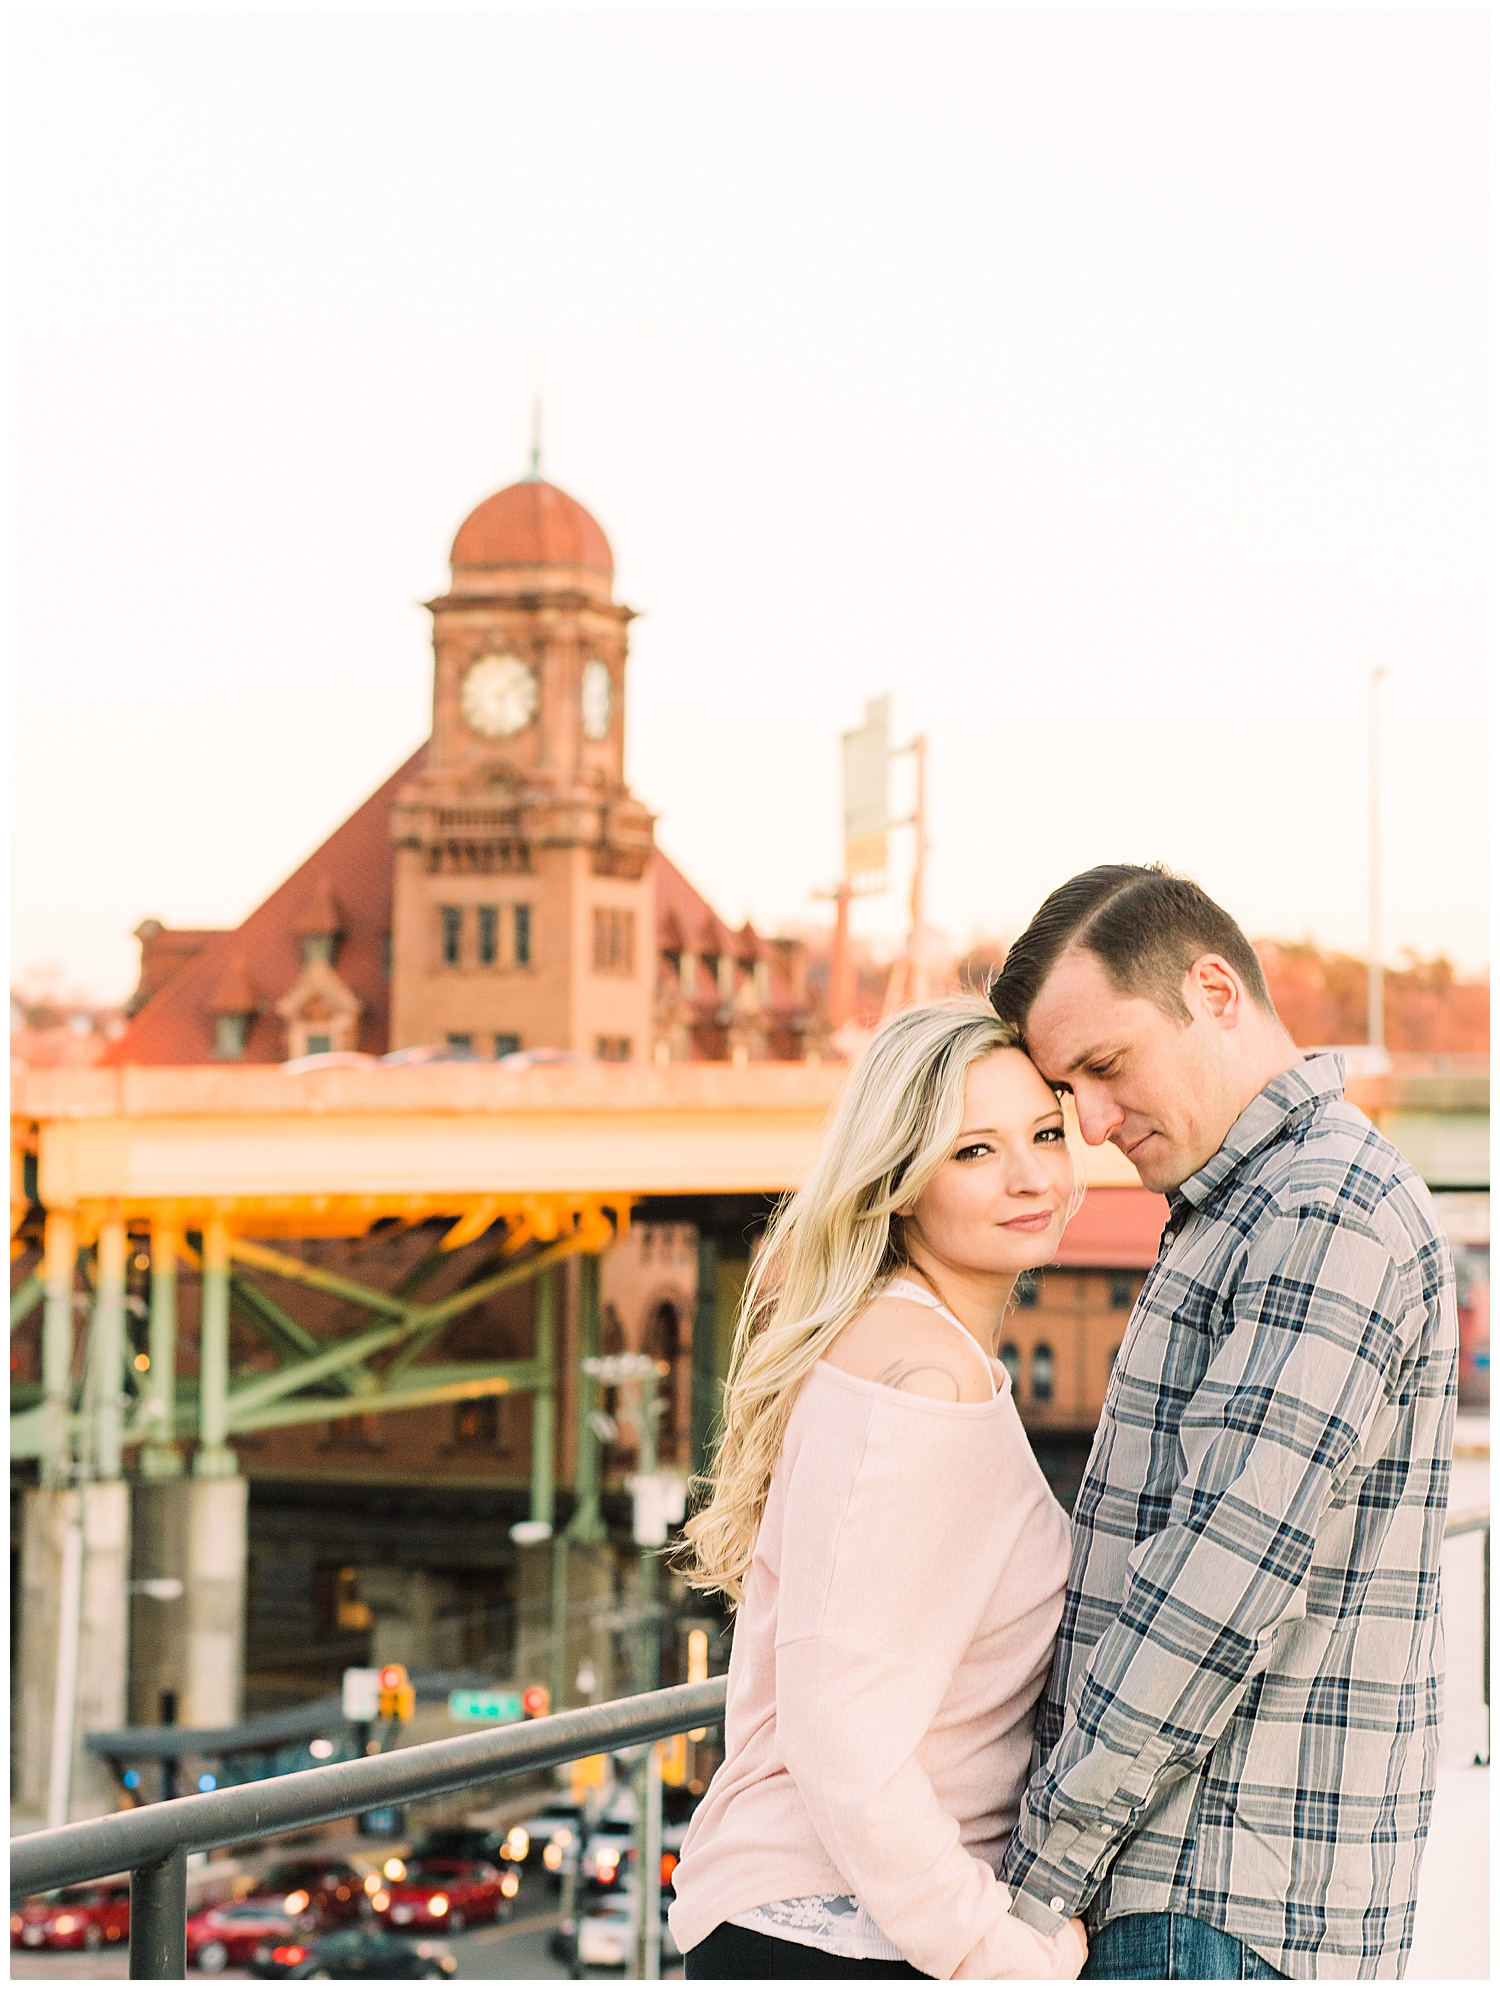 Shockoe Bottom Engagement Photos - Valerie + Scott